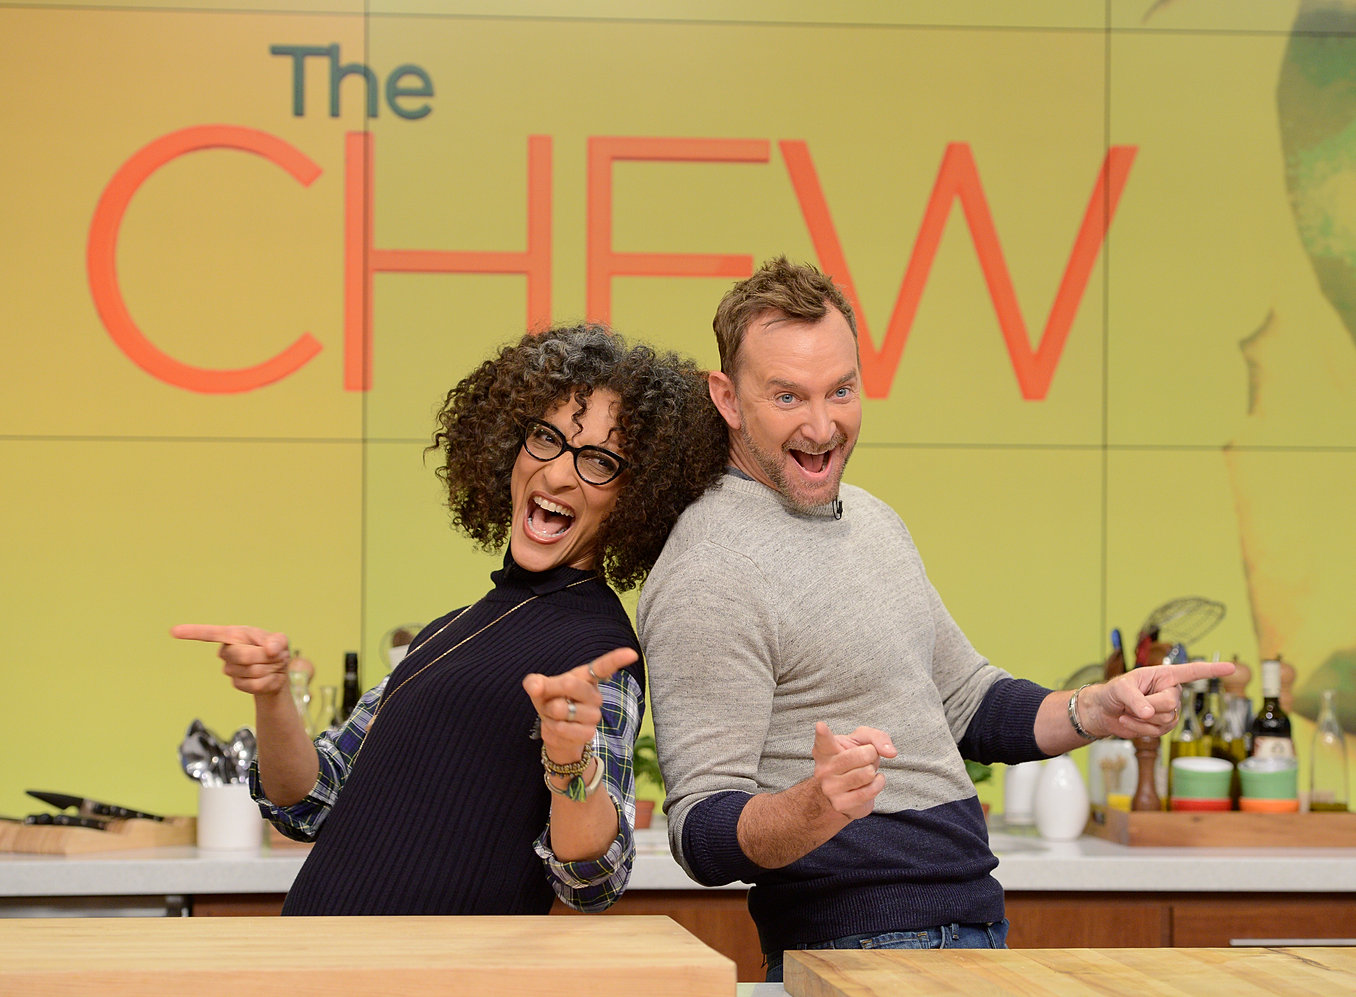 The Chew american chef carla hall's net worth in 2017. know about her books